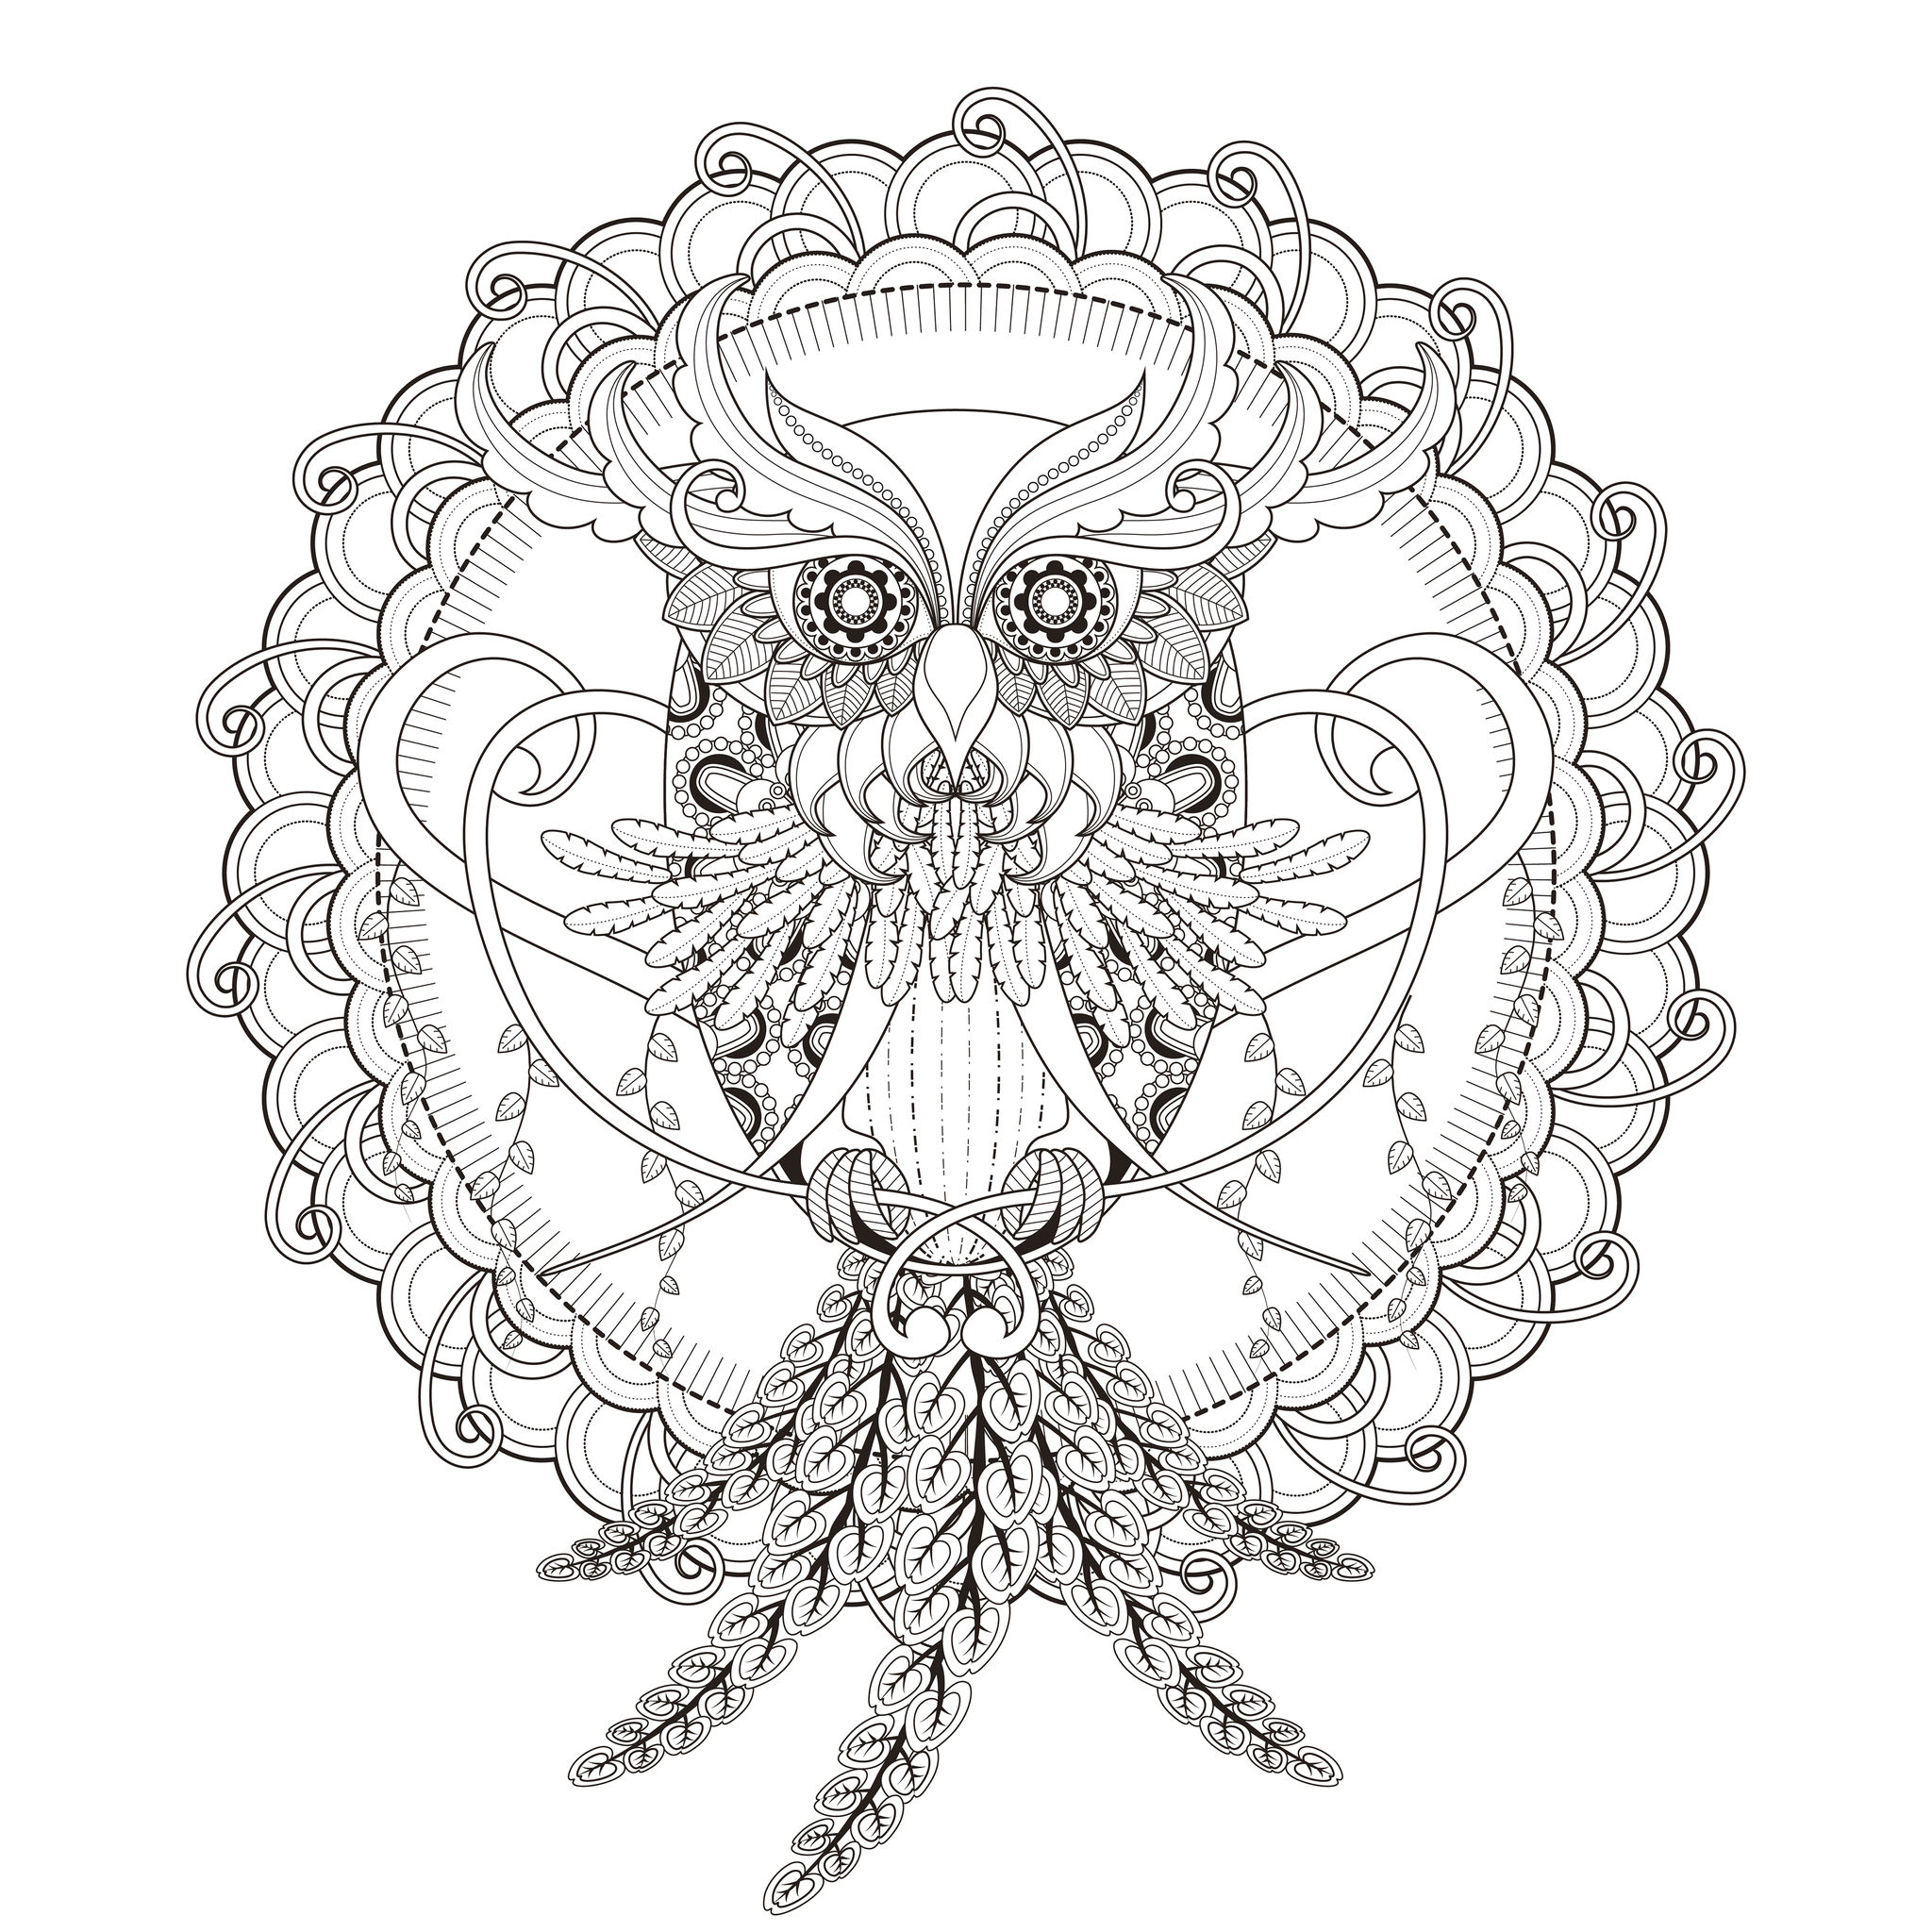 Mandala owl by kchung | Mandalas - Coloring pages for adults ...